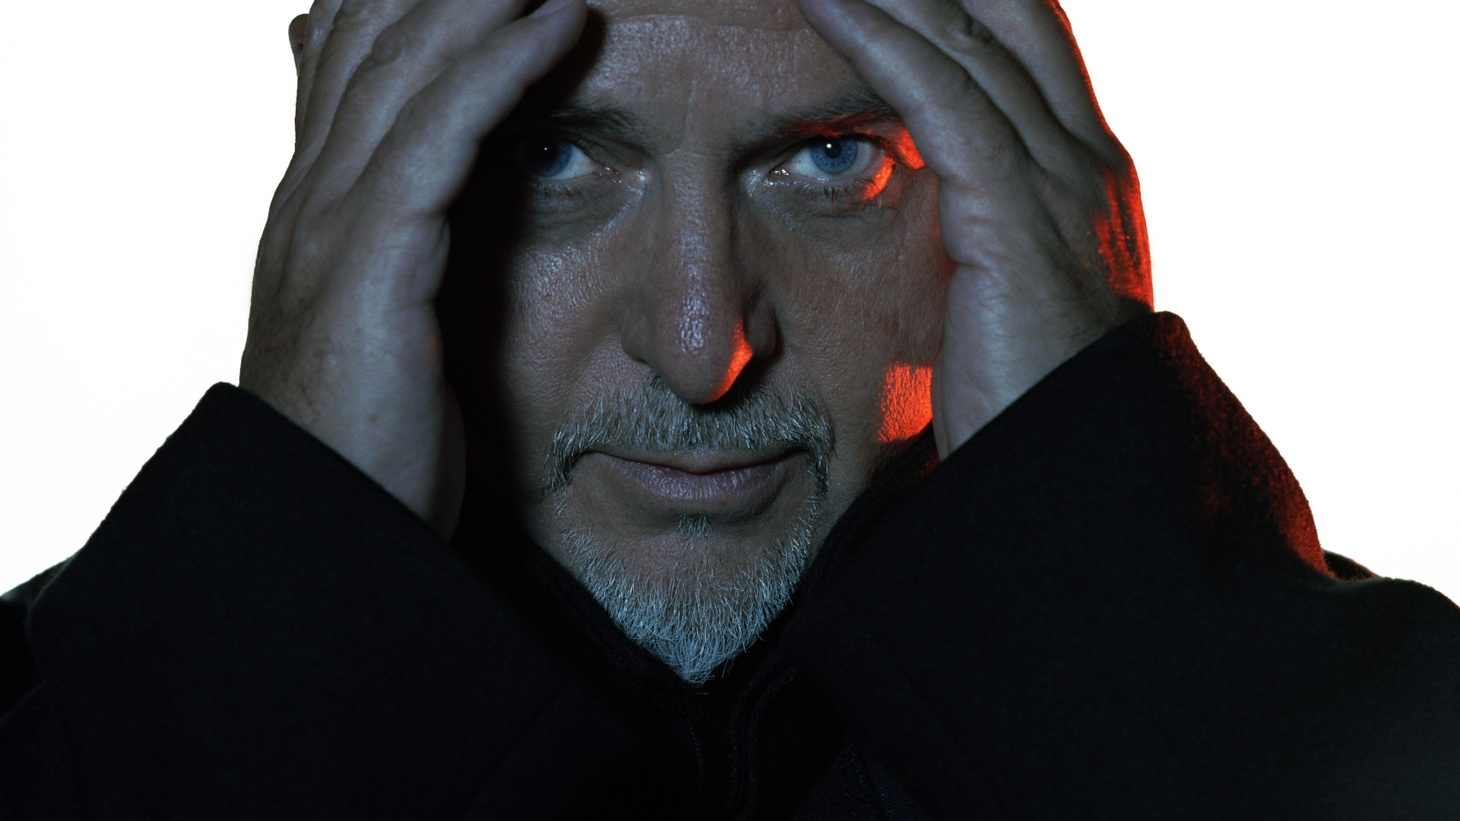 """Peter Gabriel's career has traveled through a variety of musical signposts, from prog-rock radical to international pop superstar to world-beat activist. On his latest project, Scratch My Back, Gabriel brings his personal style and sonic imagination to twelve favorite songs that he performs with solely orchestral instruments and voice.  The album is the first part of a series of """"song exchanges"""" in which Gabriel and other leading artists reinterpret each other's music. The project is the first of its kind, and a collaboration of sorts. All the artists whose songs Gabriel has recorded here are returning the favor by each recording a song of his. The fruits of this exchange will be heard on a forthcoming companion volume, I'll Scratch Yours."""